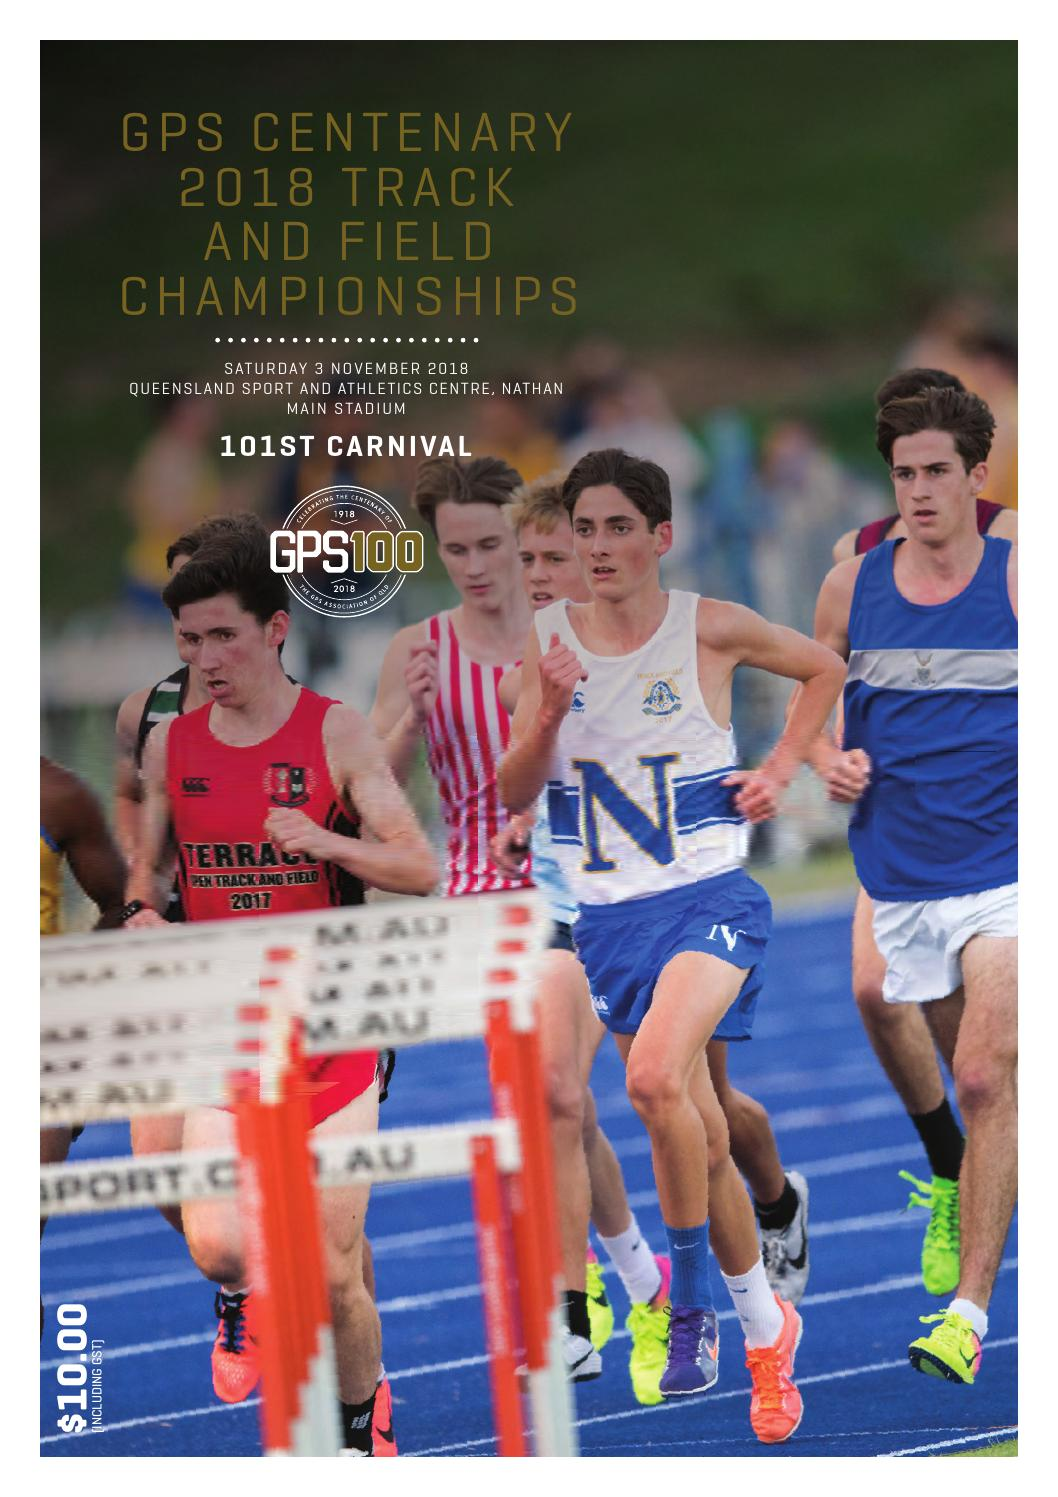 GPS Centenary 2018 Track and Field Championships Official Program by